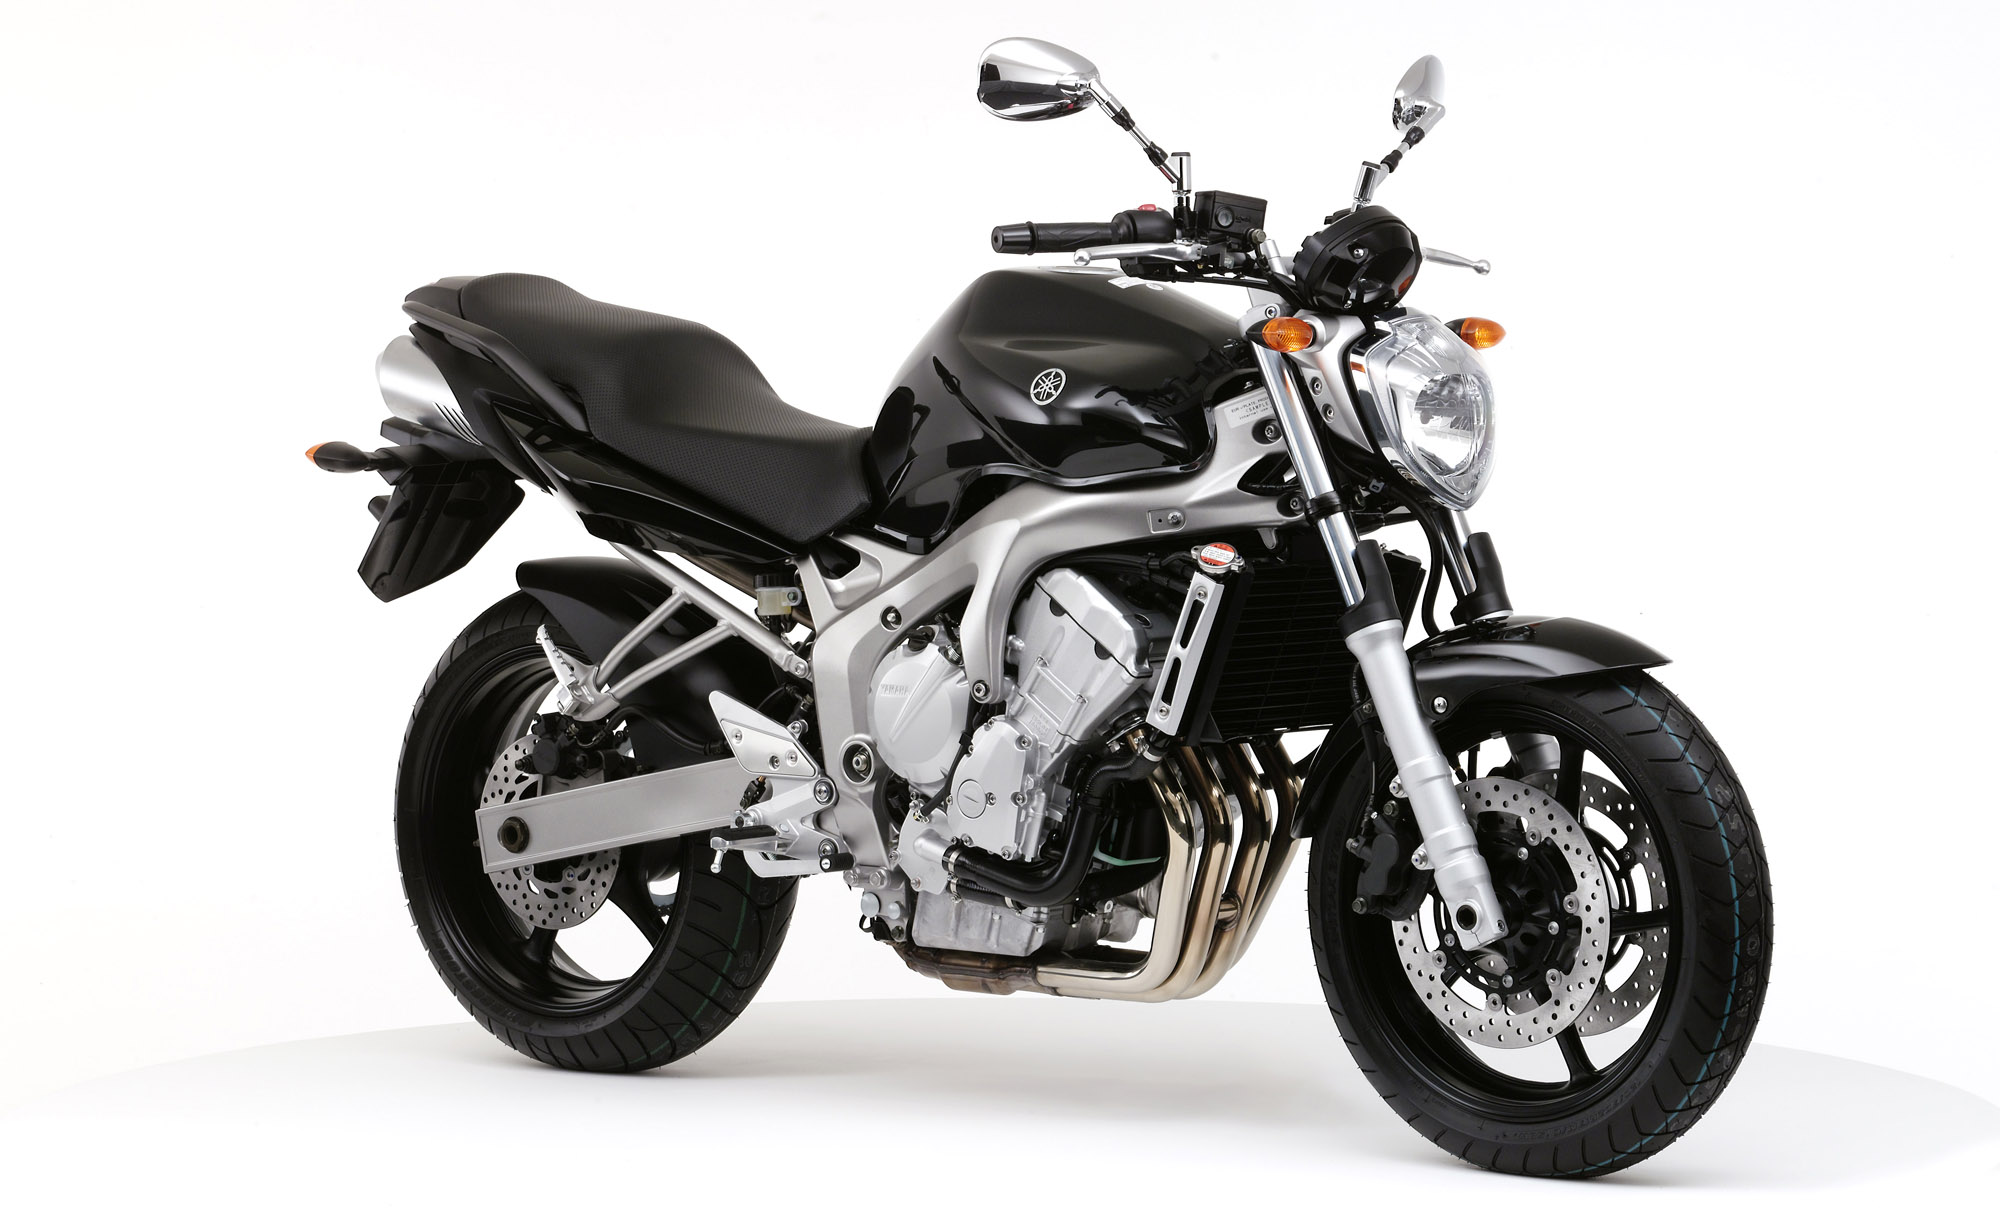 Yamaha FZ 6N S2 ABS 2009 images #91887